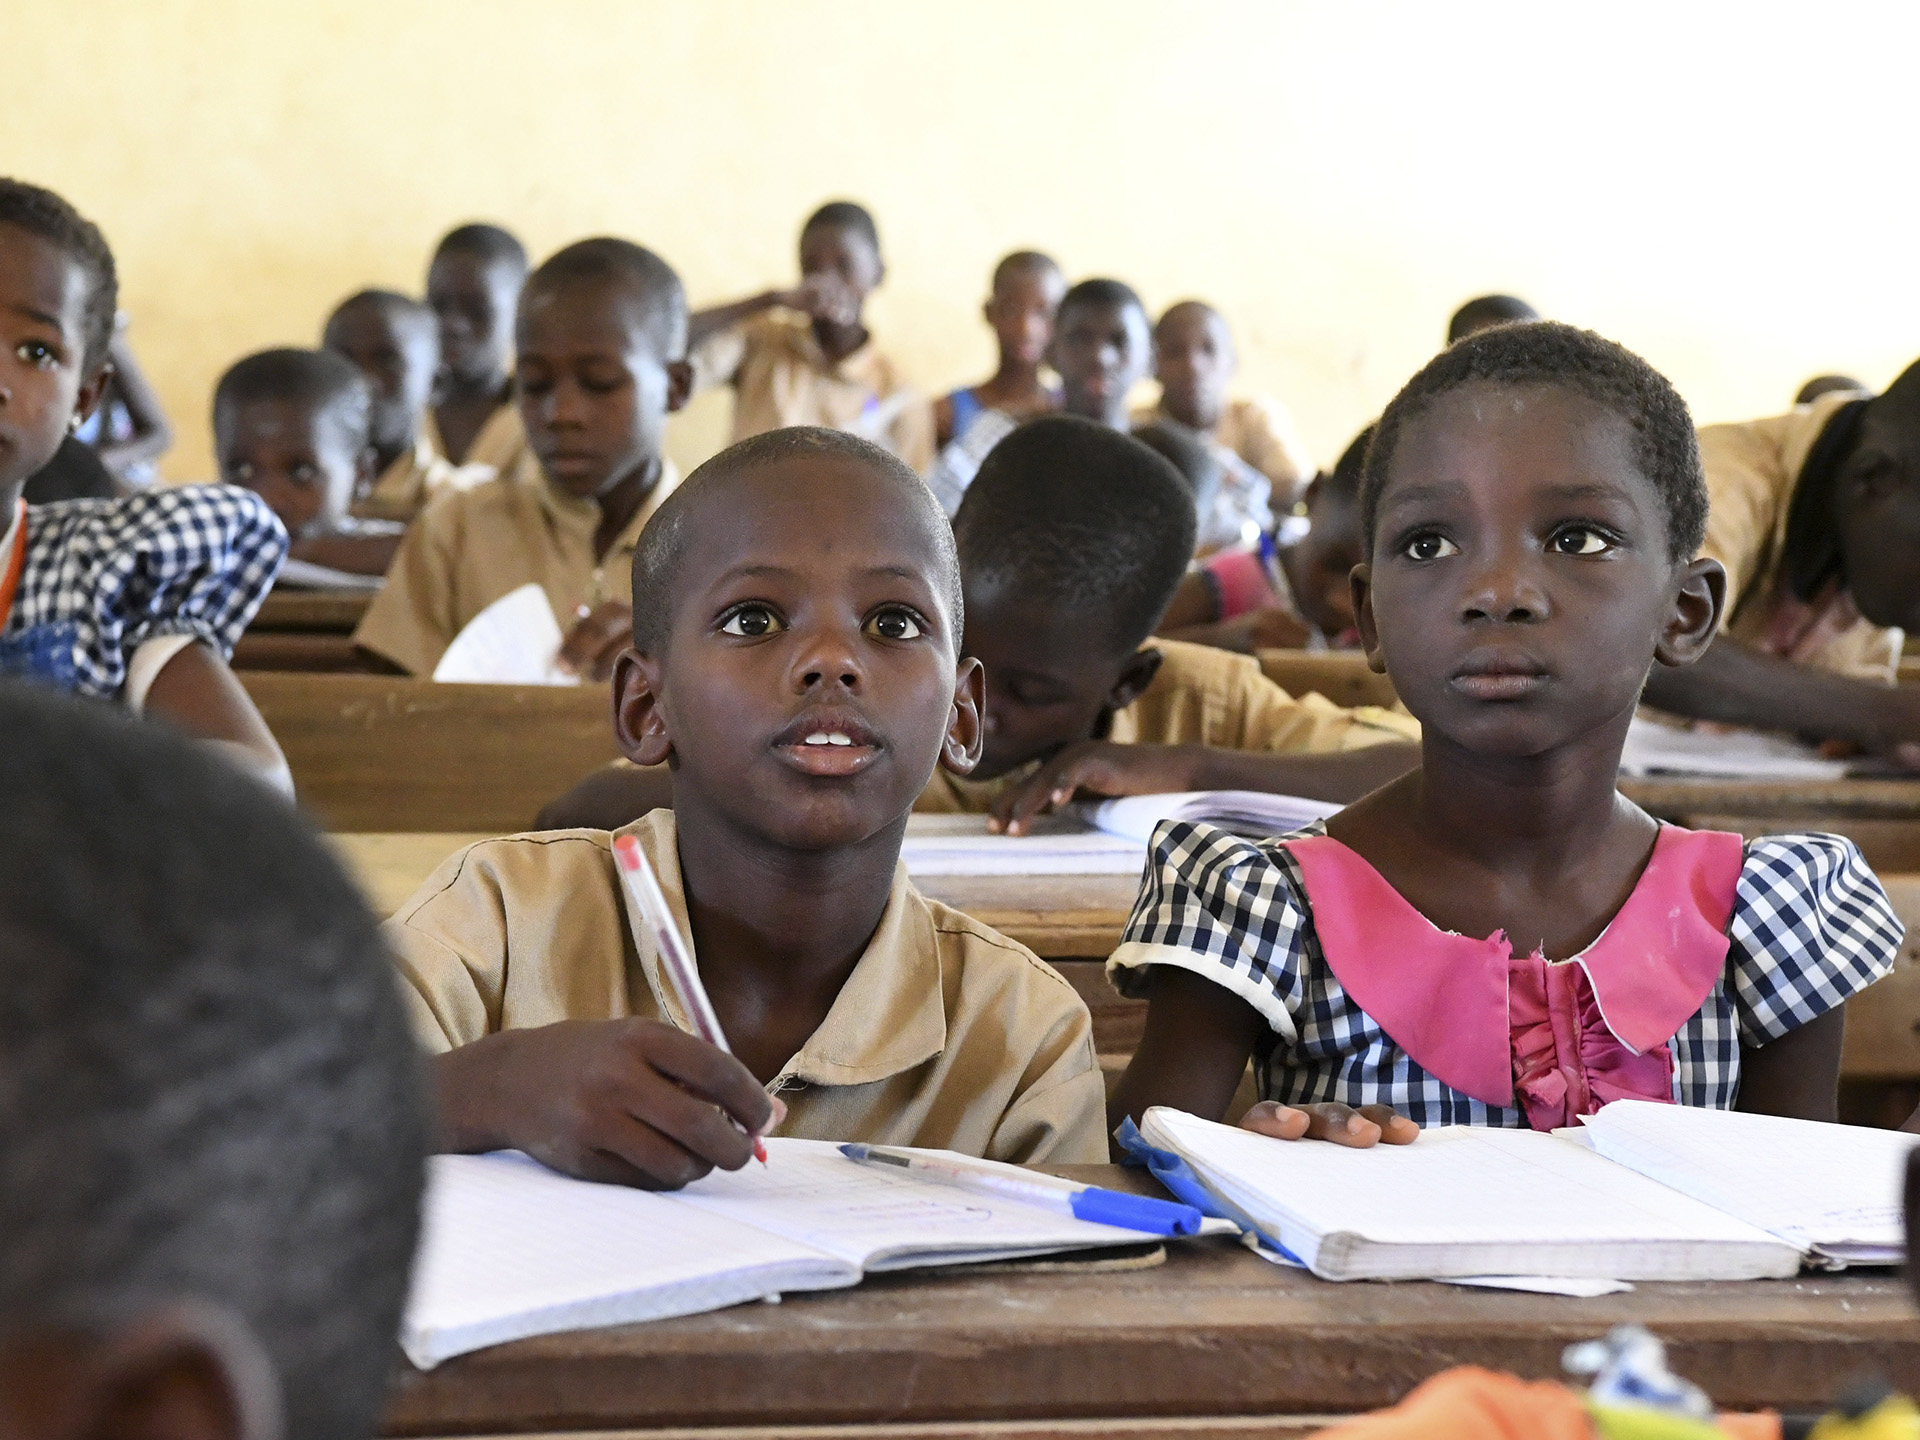 The path to gender equality runs through education